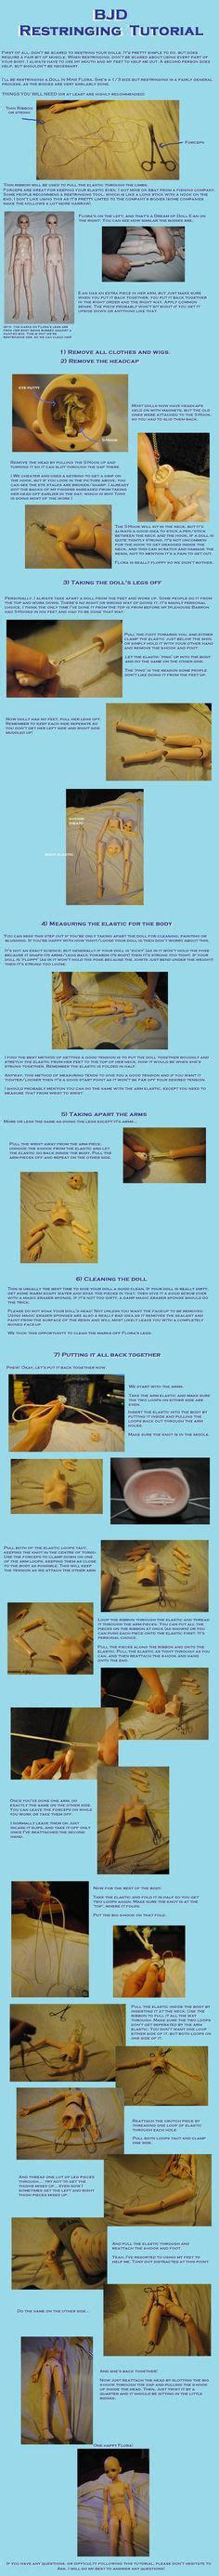 restringing a jointed doll jointed doll blueprint search куклы